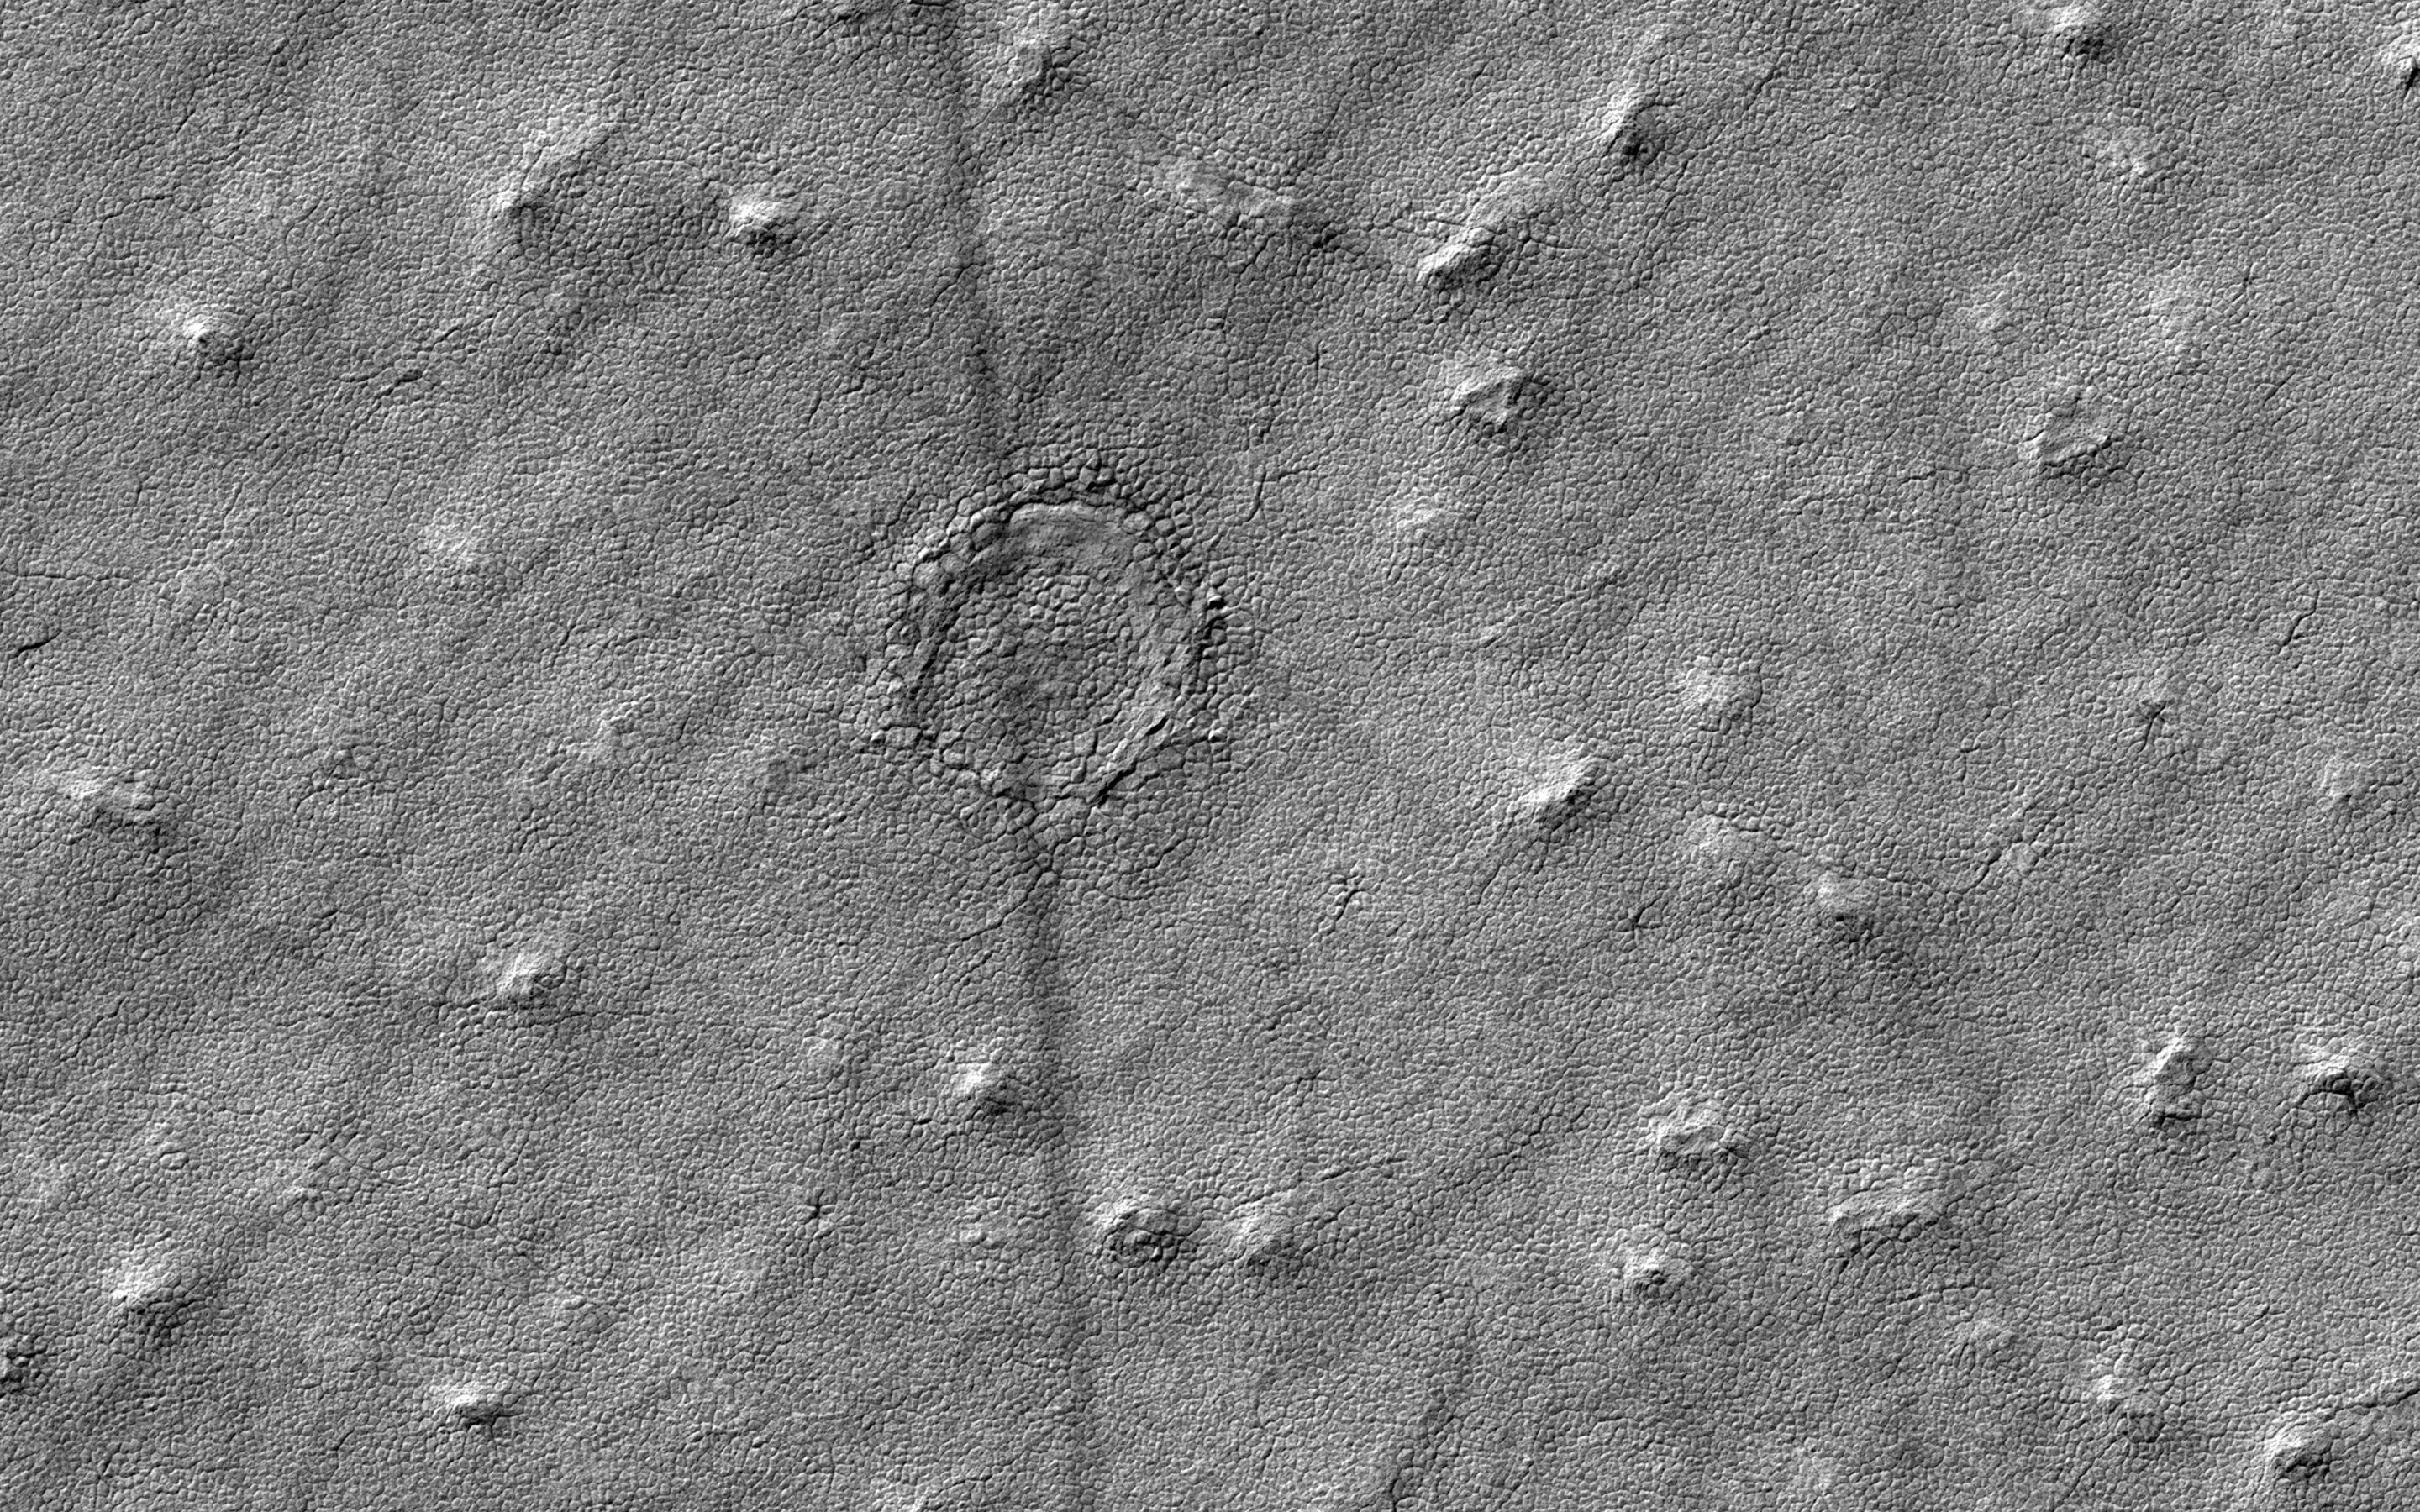 Is that an Impact Crater? | NASA